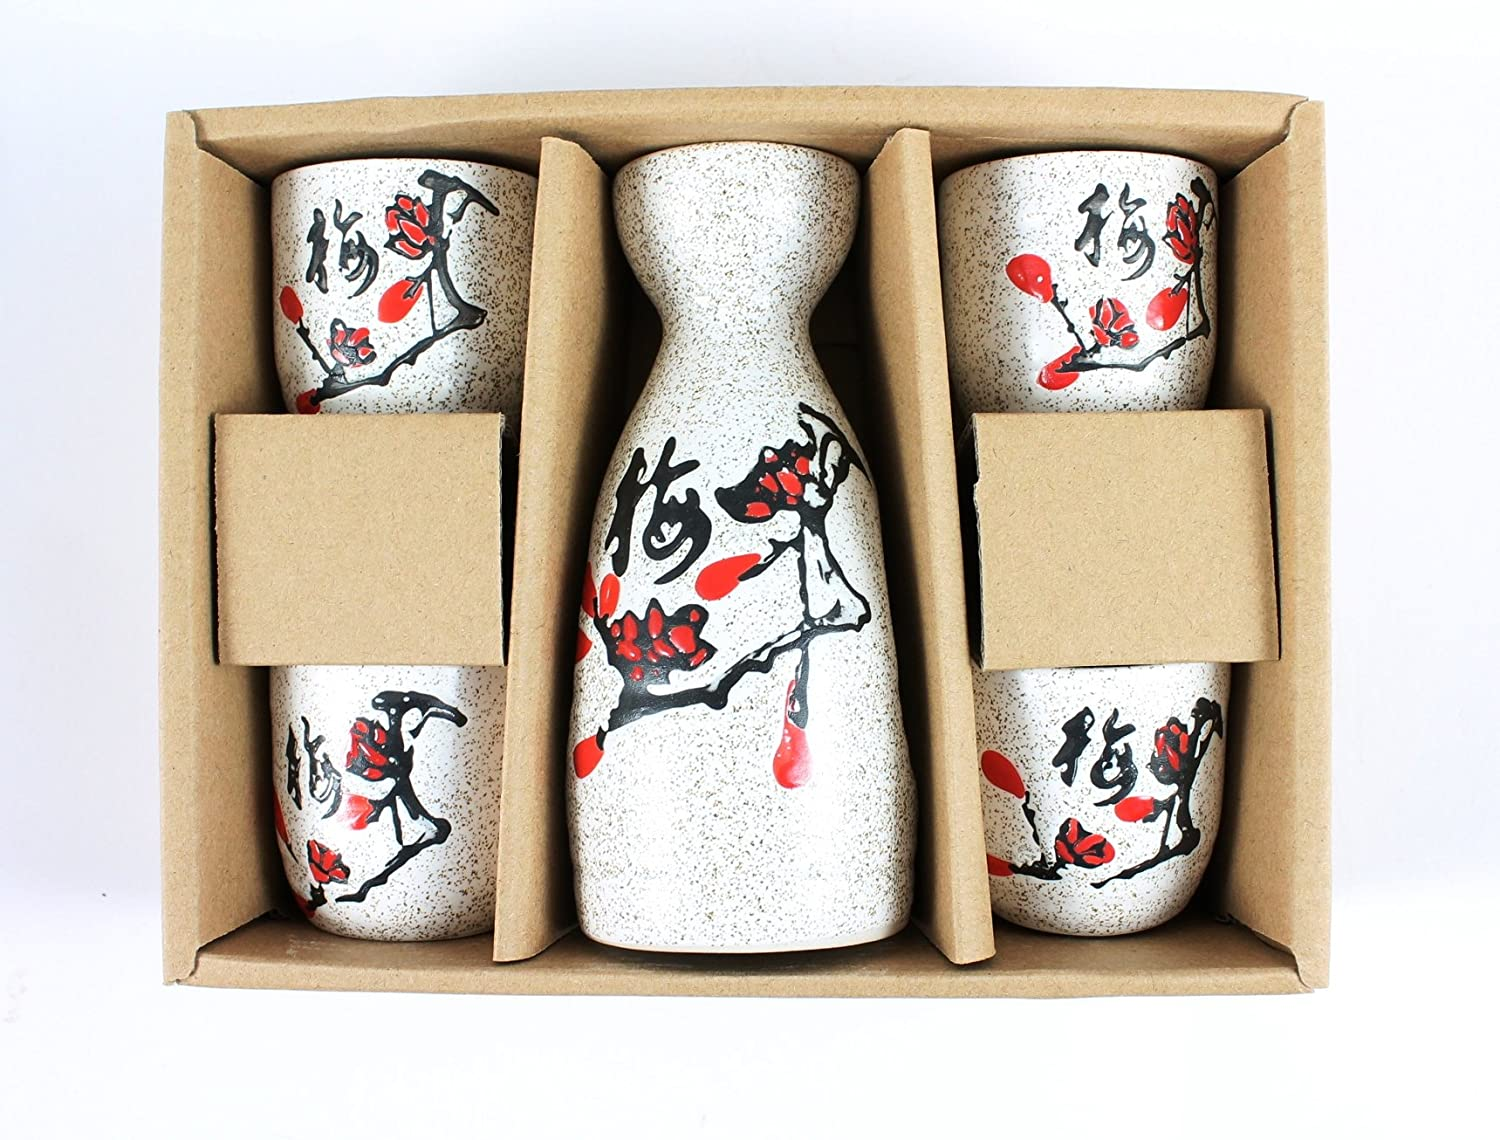 5 Peice Sake Set (Mix Designs) (Black Cherry Blossom)